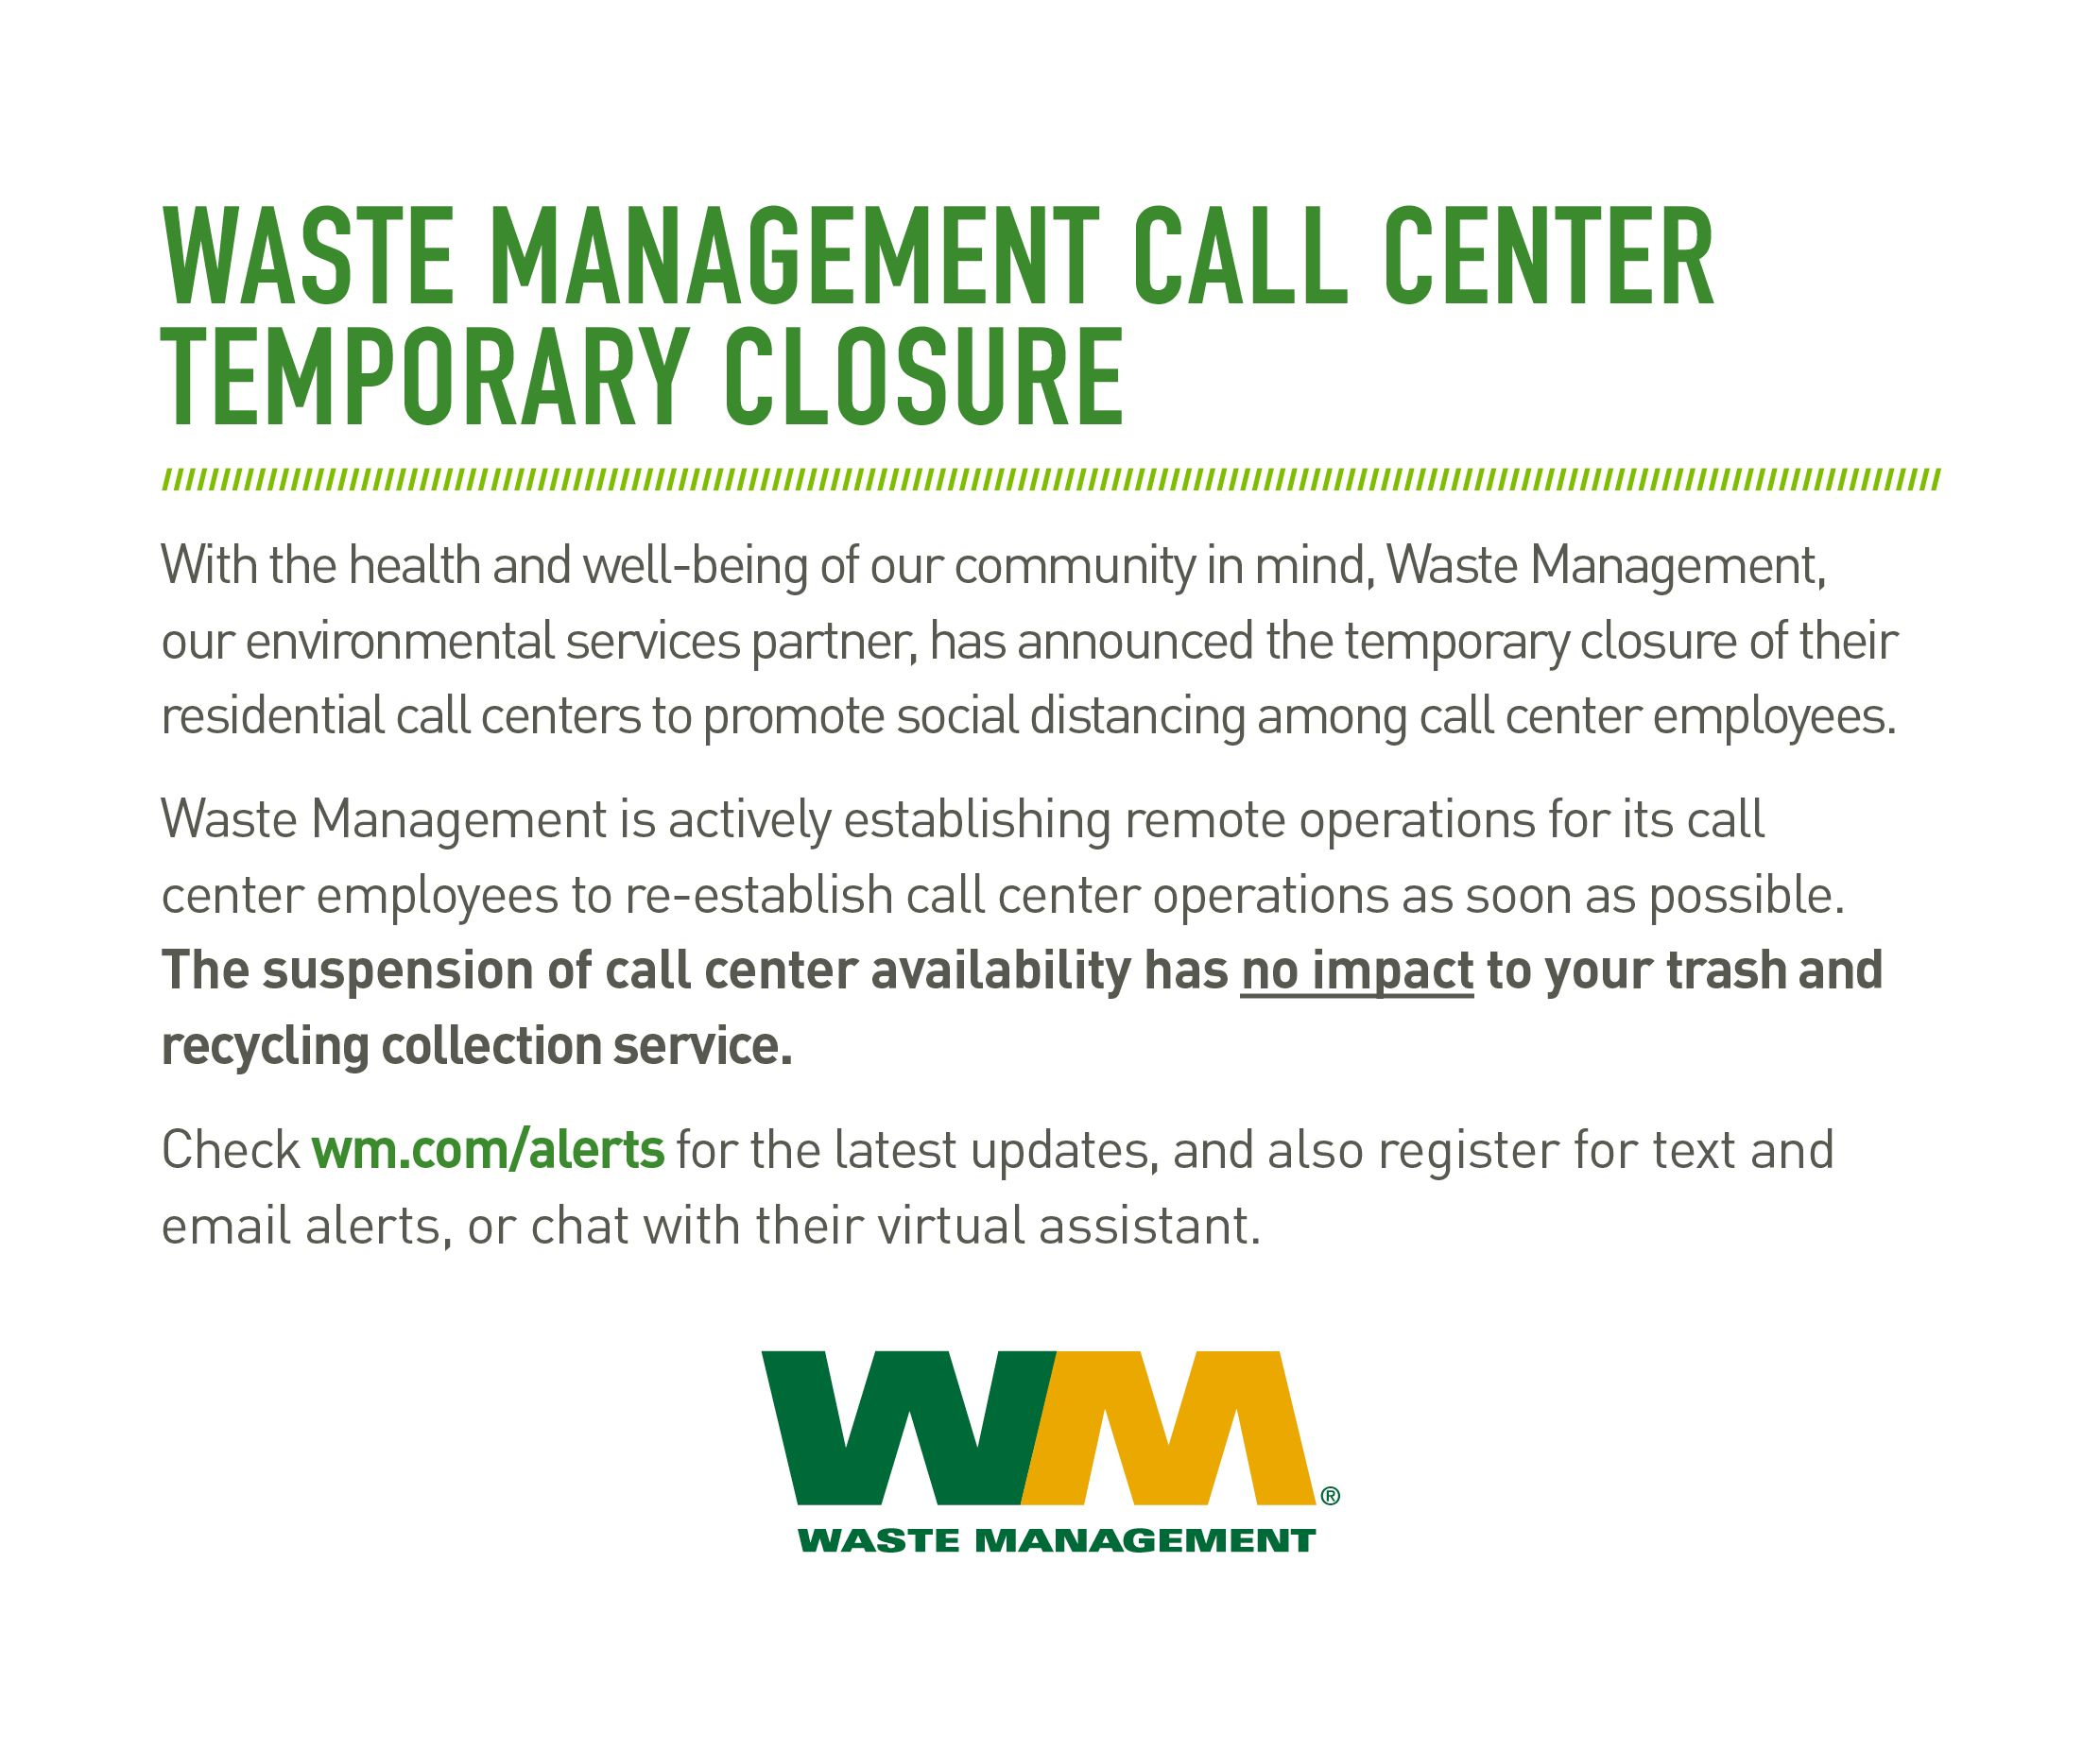 Waste Management Call Center Temporary Closure 3 19 2020